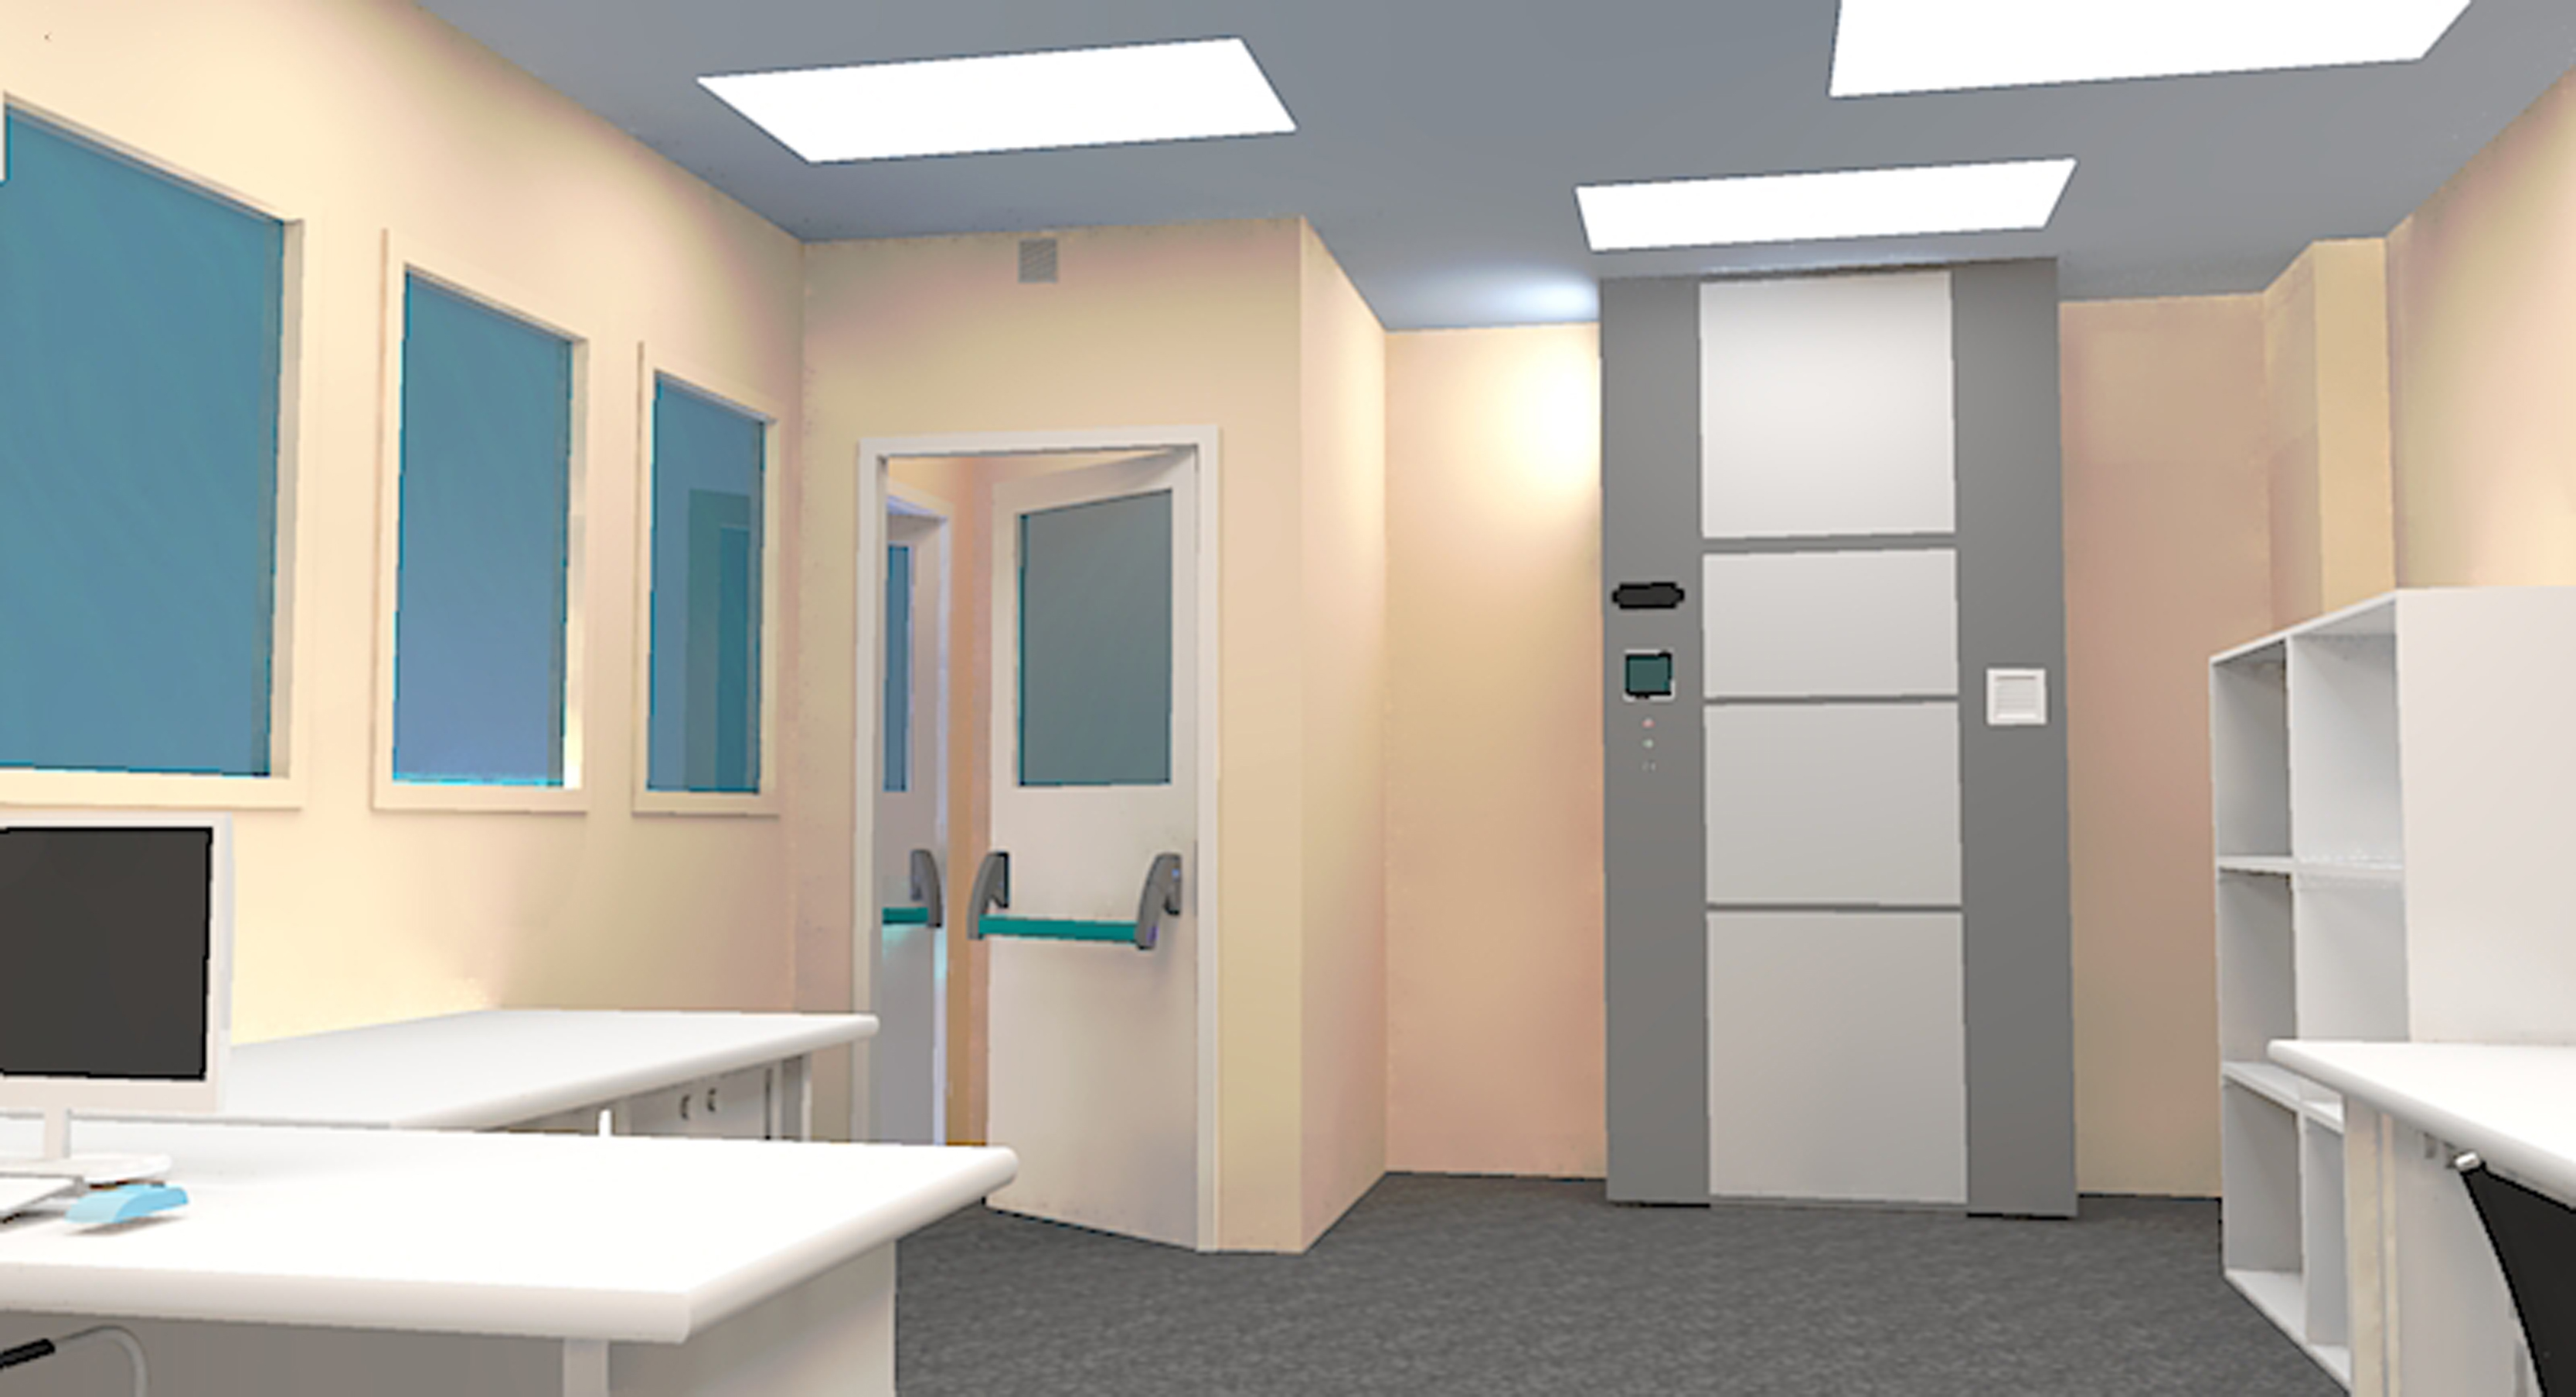 conditioned-laboratory-rendering